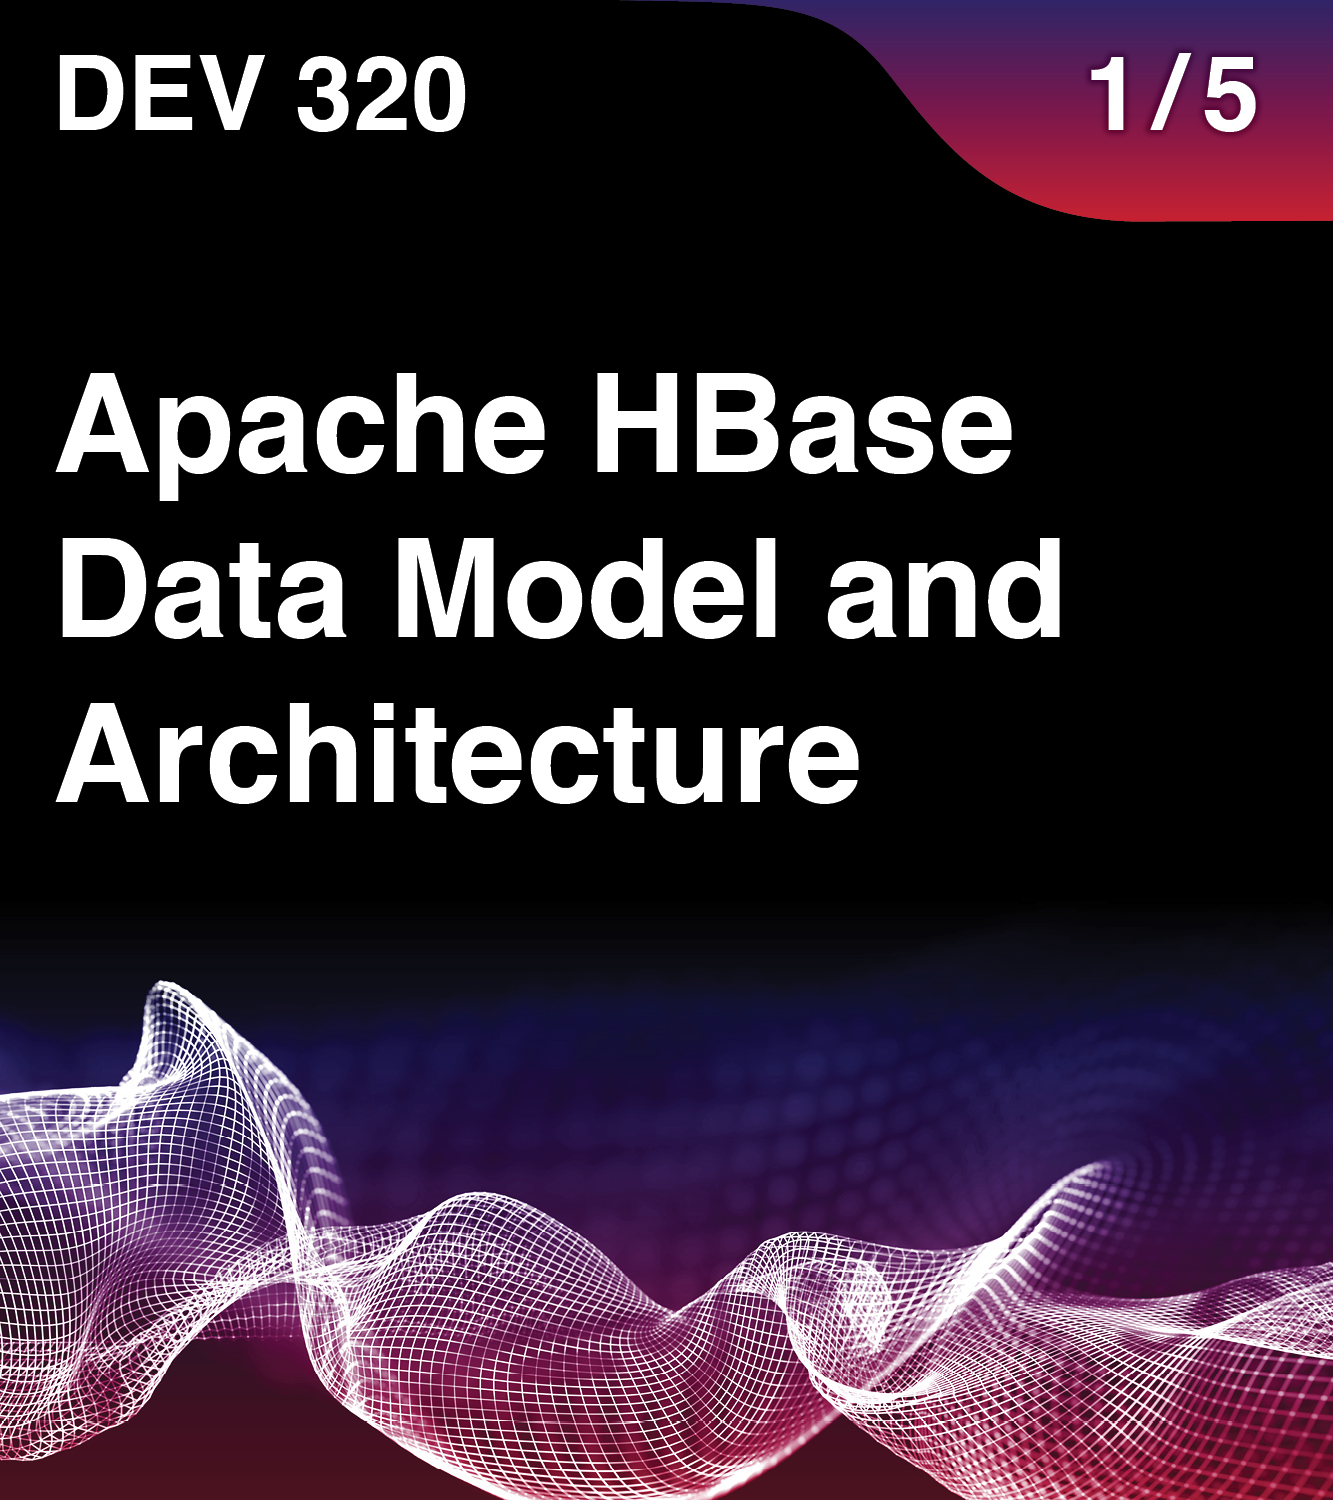 DEV 320 - Apache HBase Data Model and Architecture